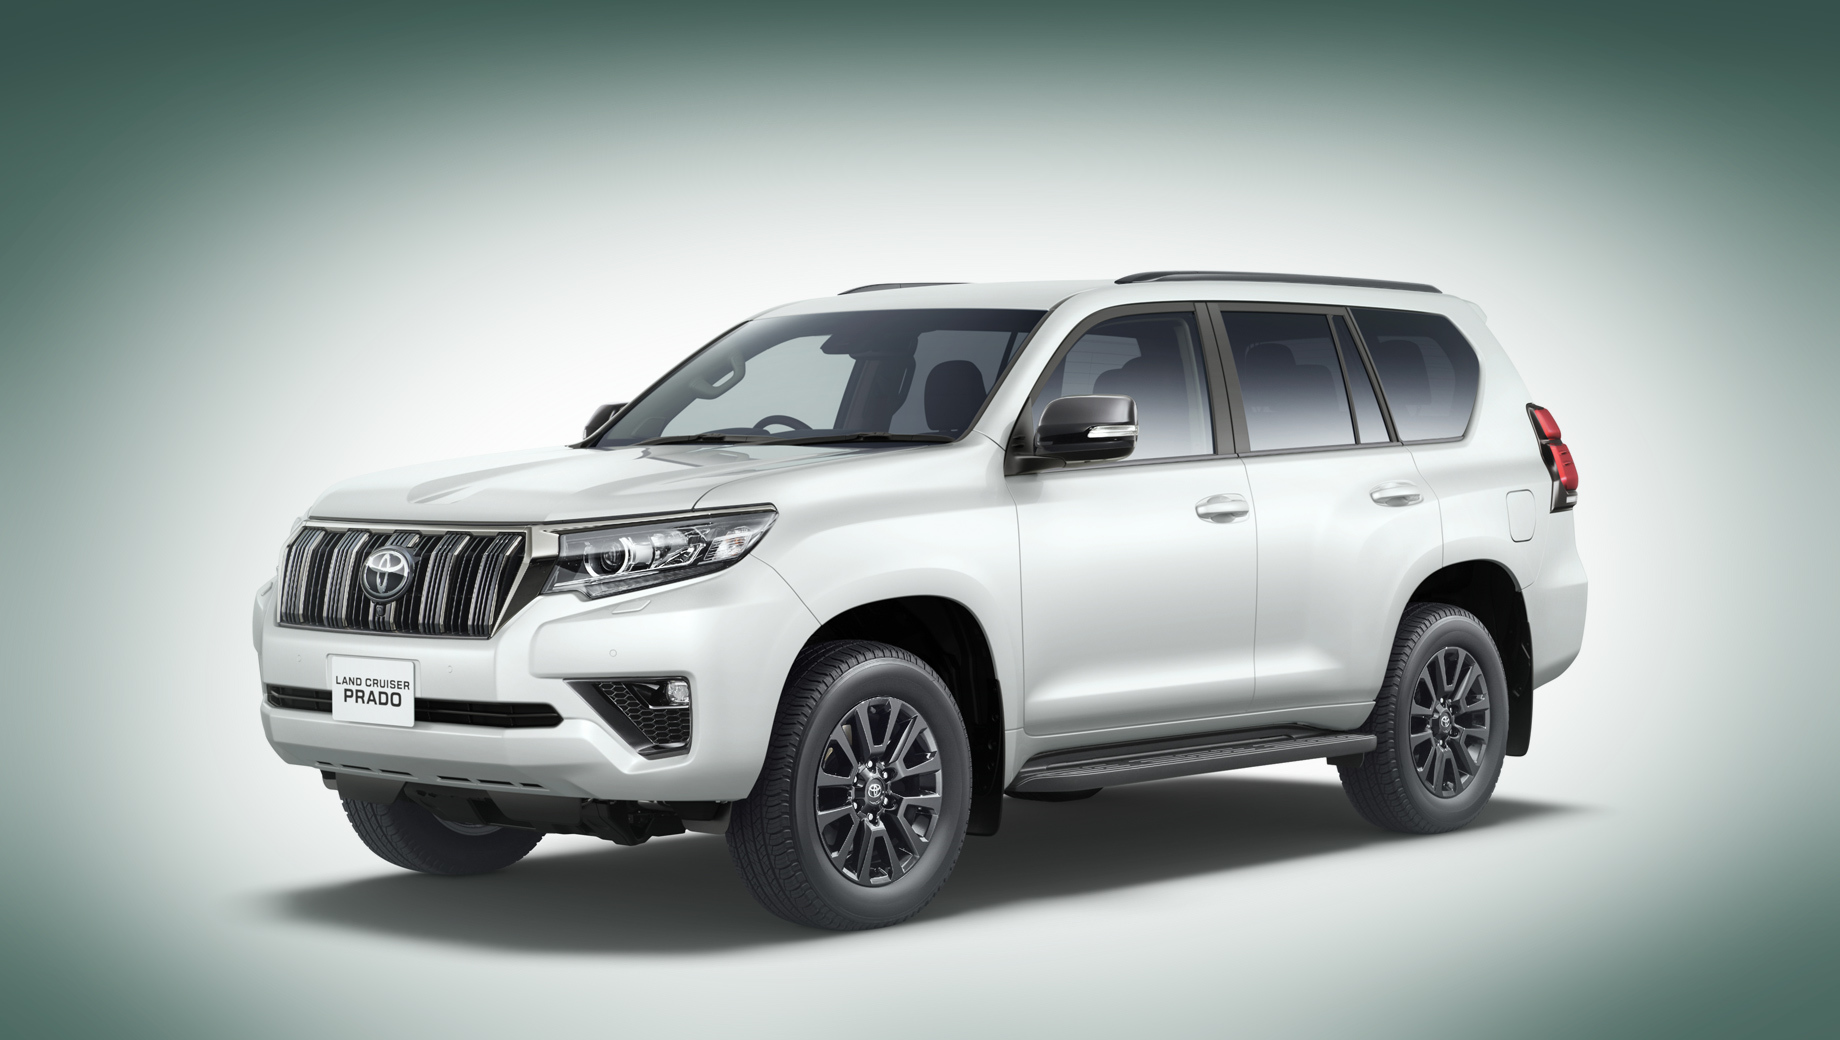 Дизельная Toyota Land Cruiser Prado стала мощнее